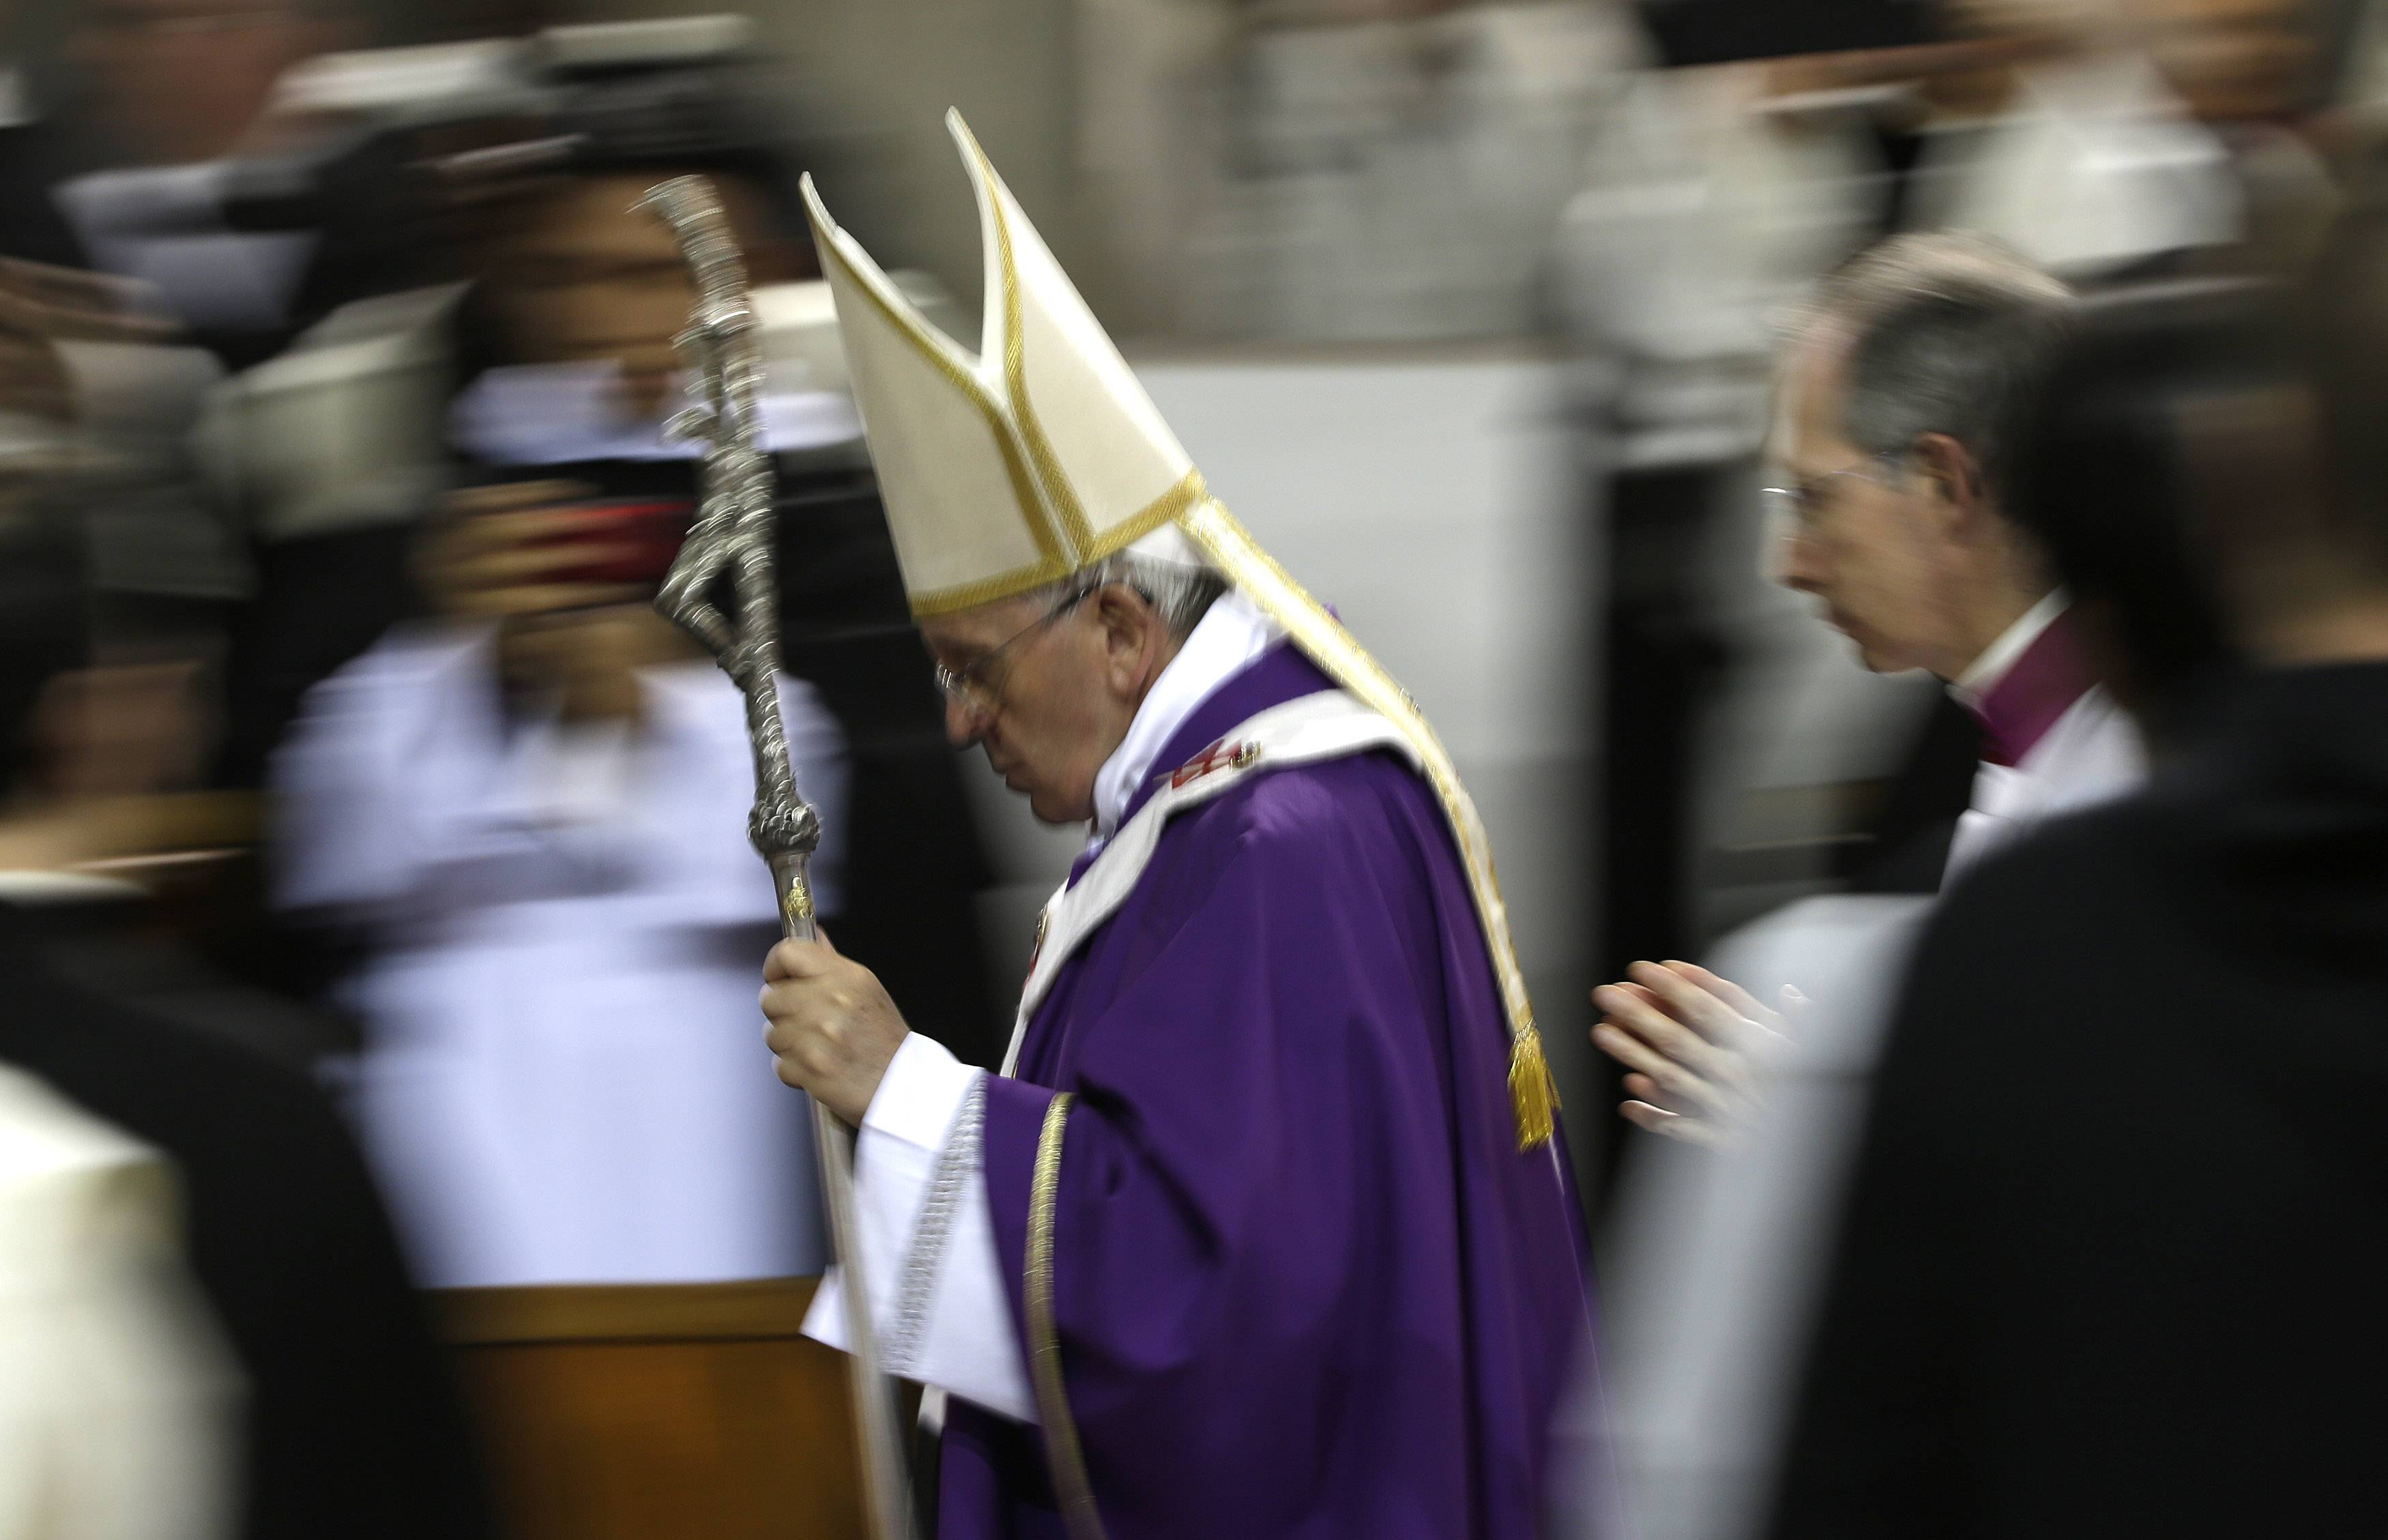 Pope Francis leaves after celebrating the Ash Wednesday mass at the Santa Sabina Basilica in Rome.